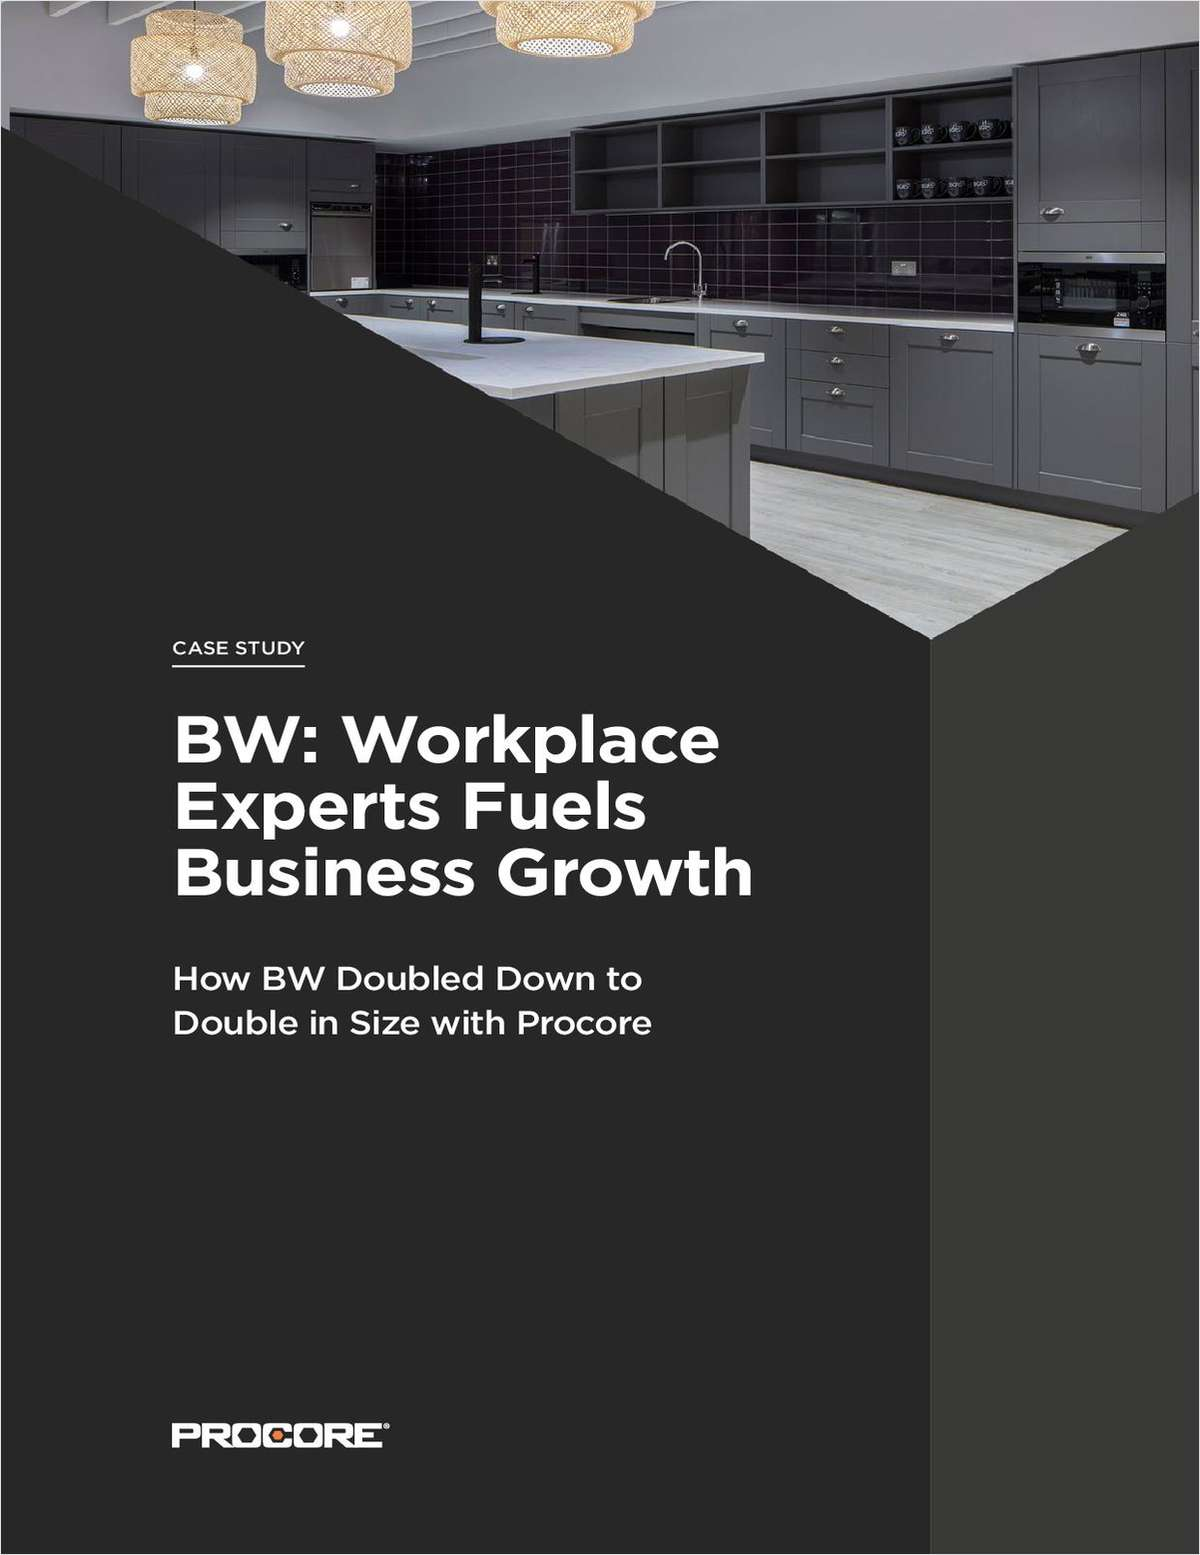 BW: Workplace Experts Fuels Business Growth